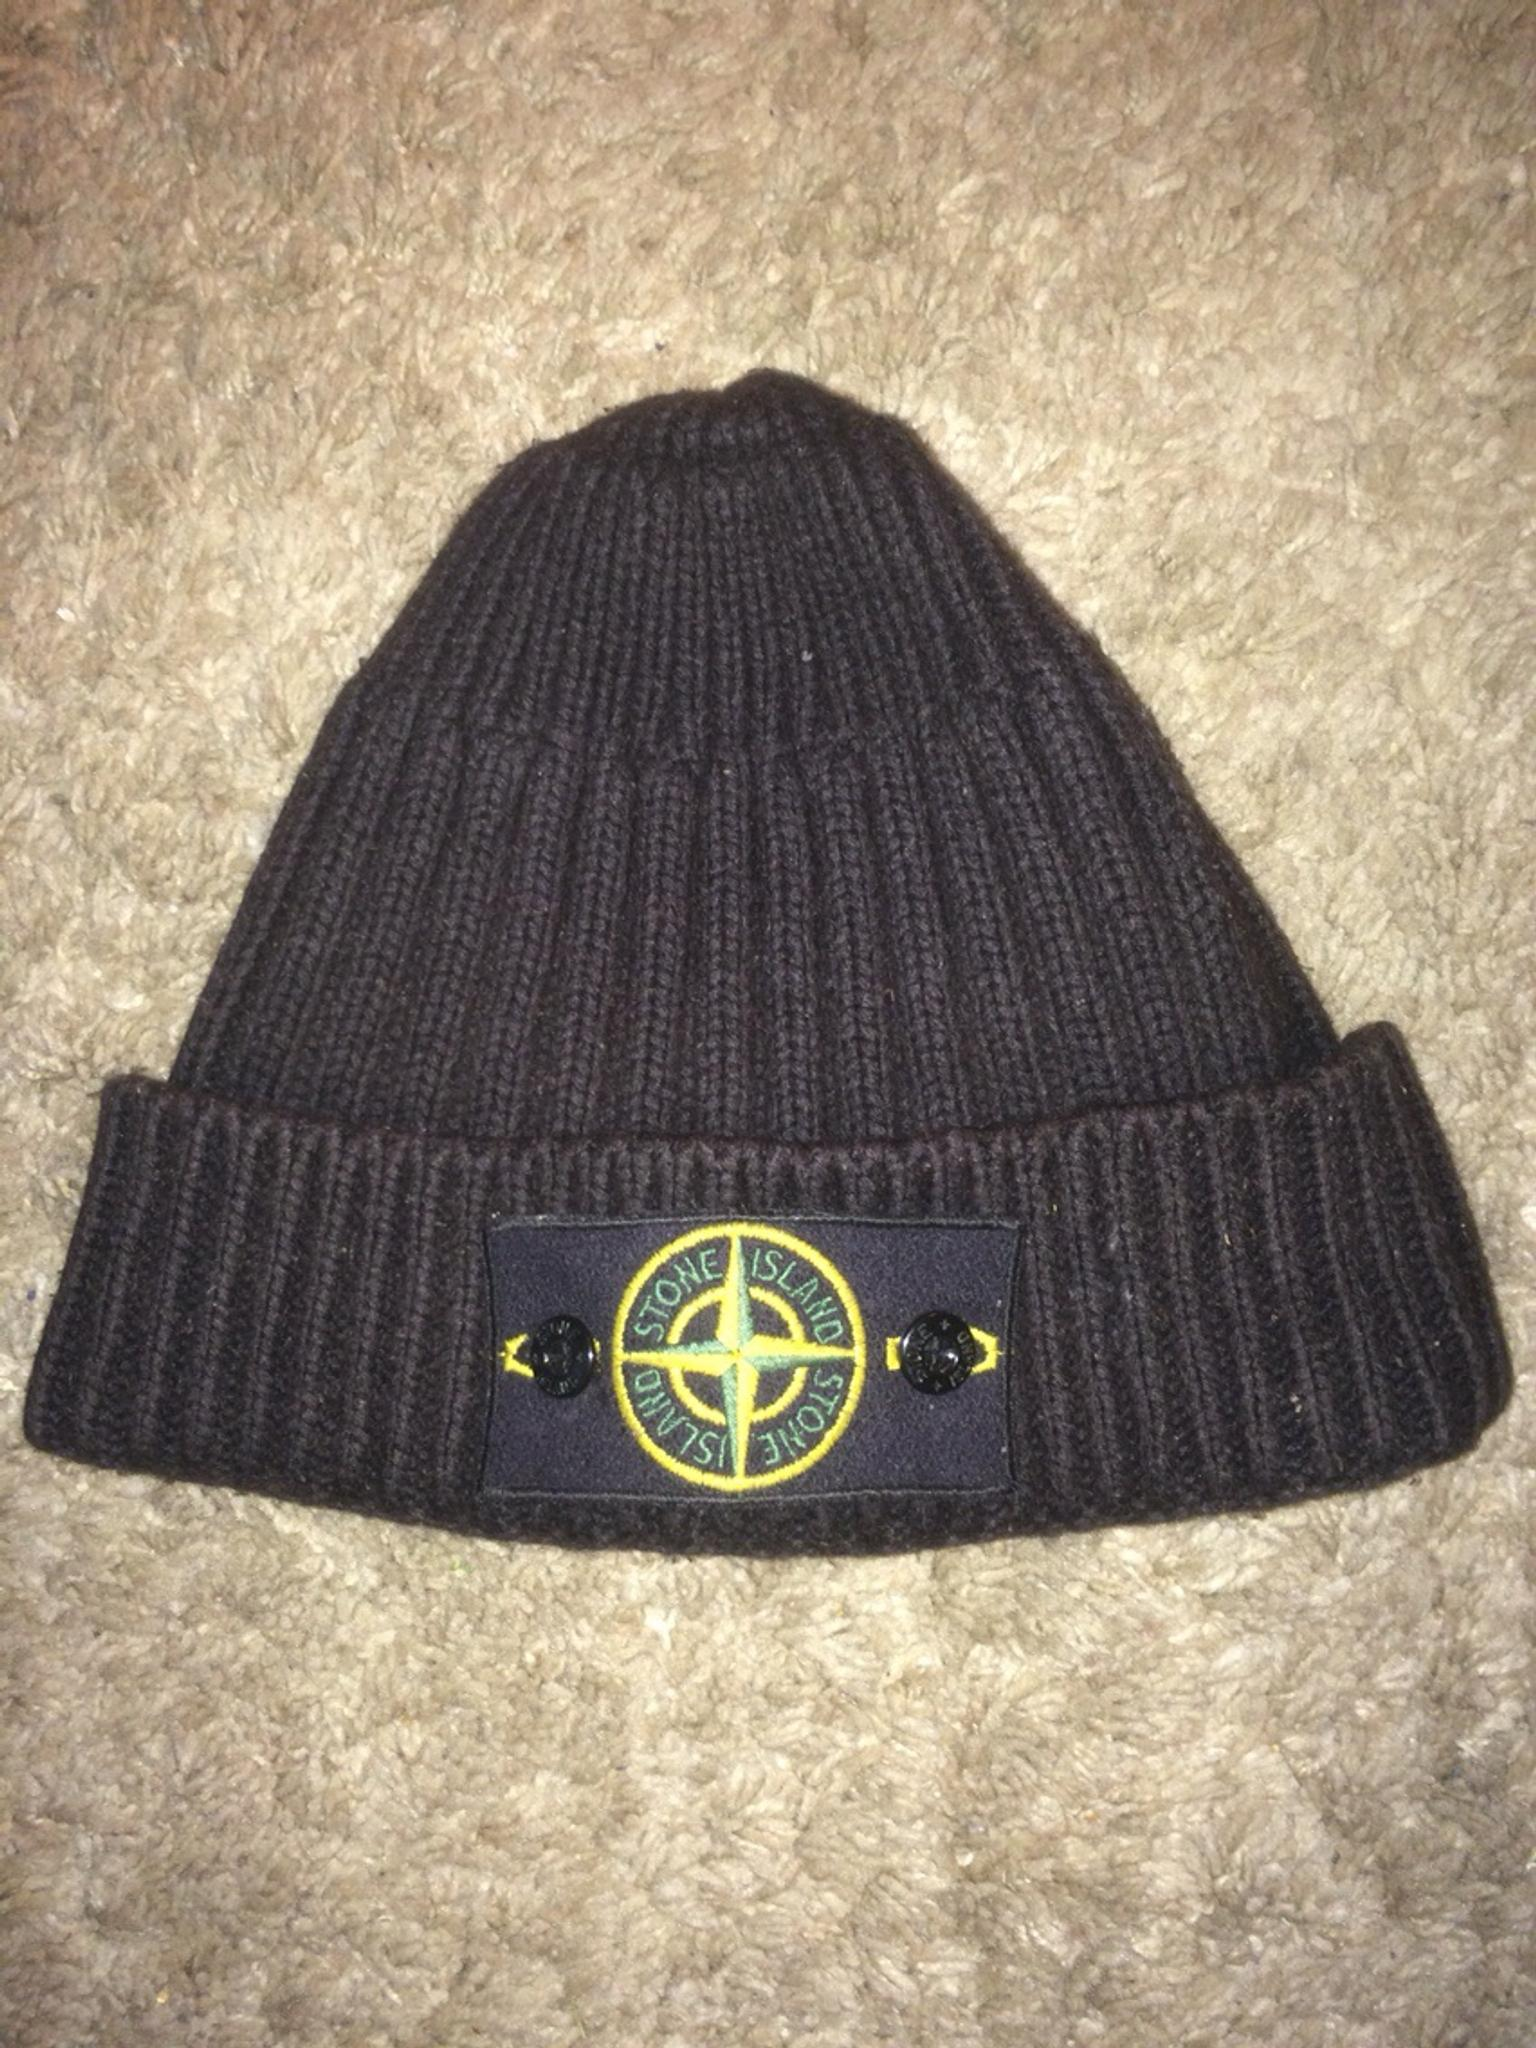 Stone island hat in SS13 Basildon for £35.00 for sale - Shpock 4b1fe6de010